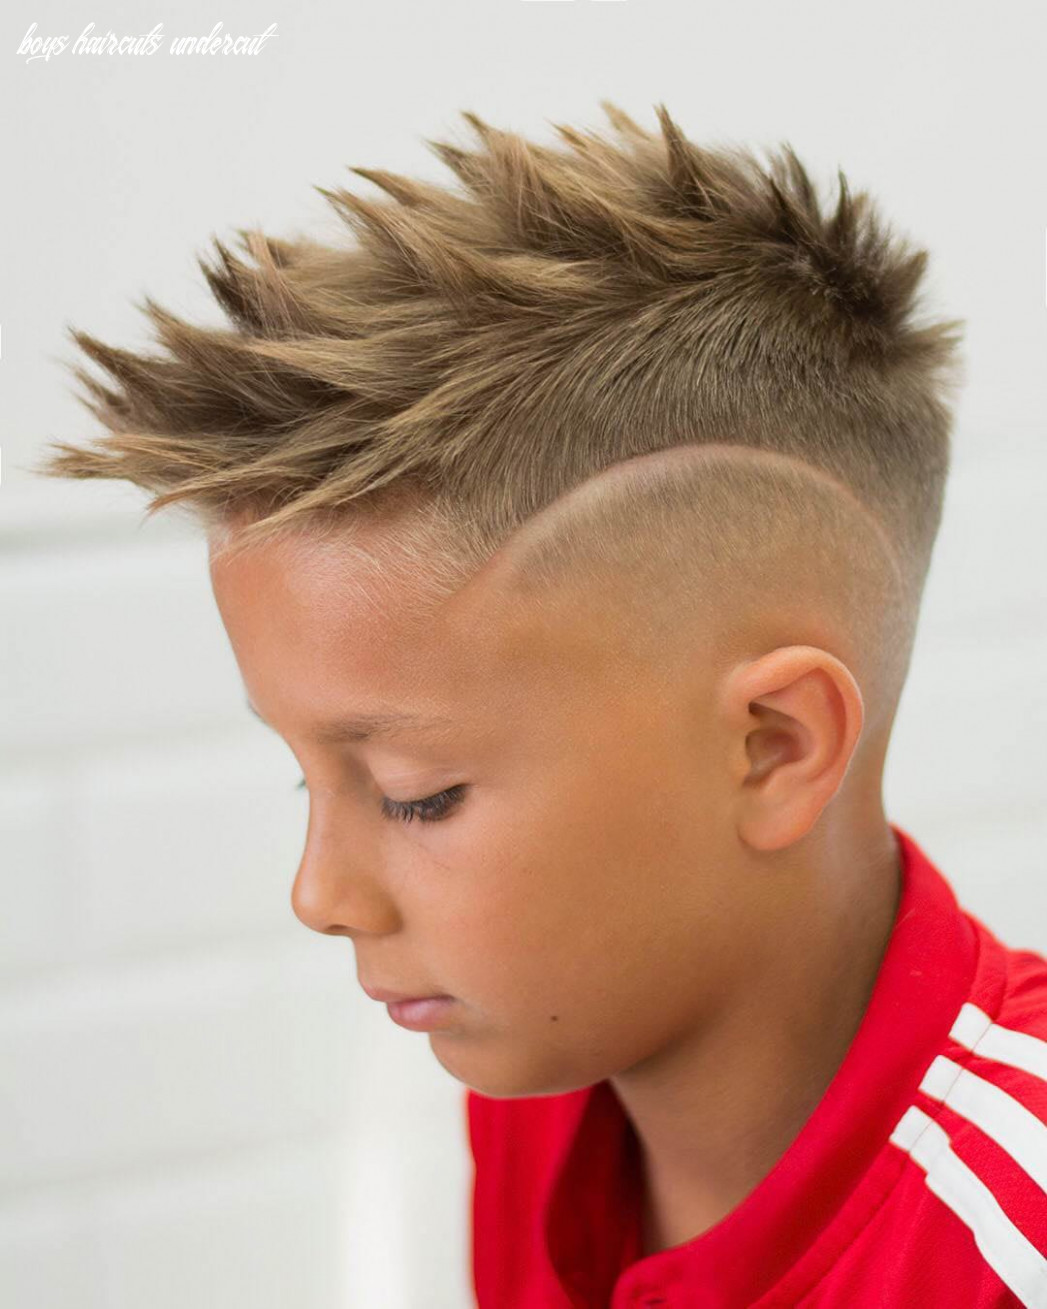 11 excellent school haircuts for boys styling tips boys haircuts undercut